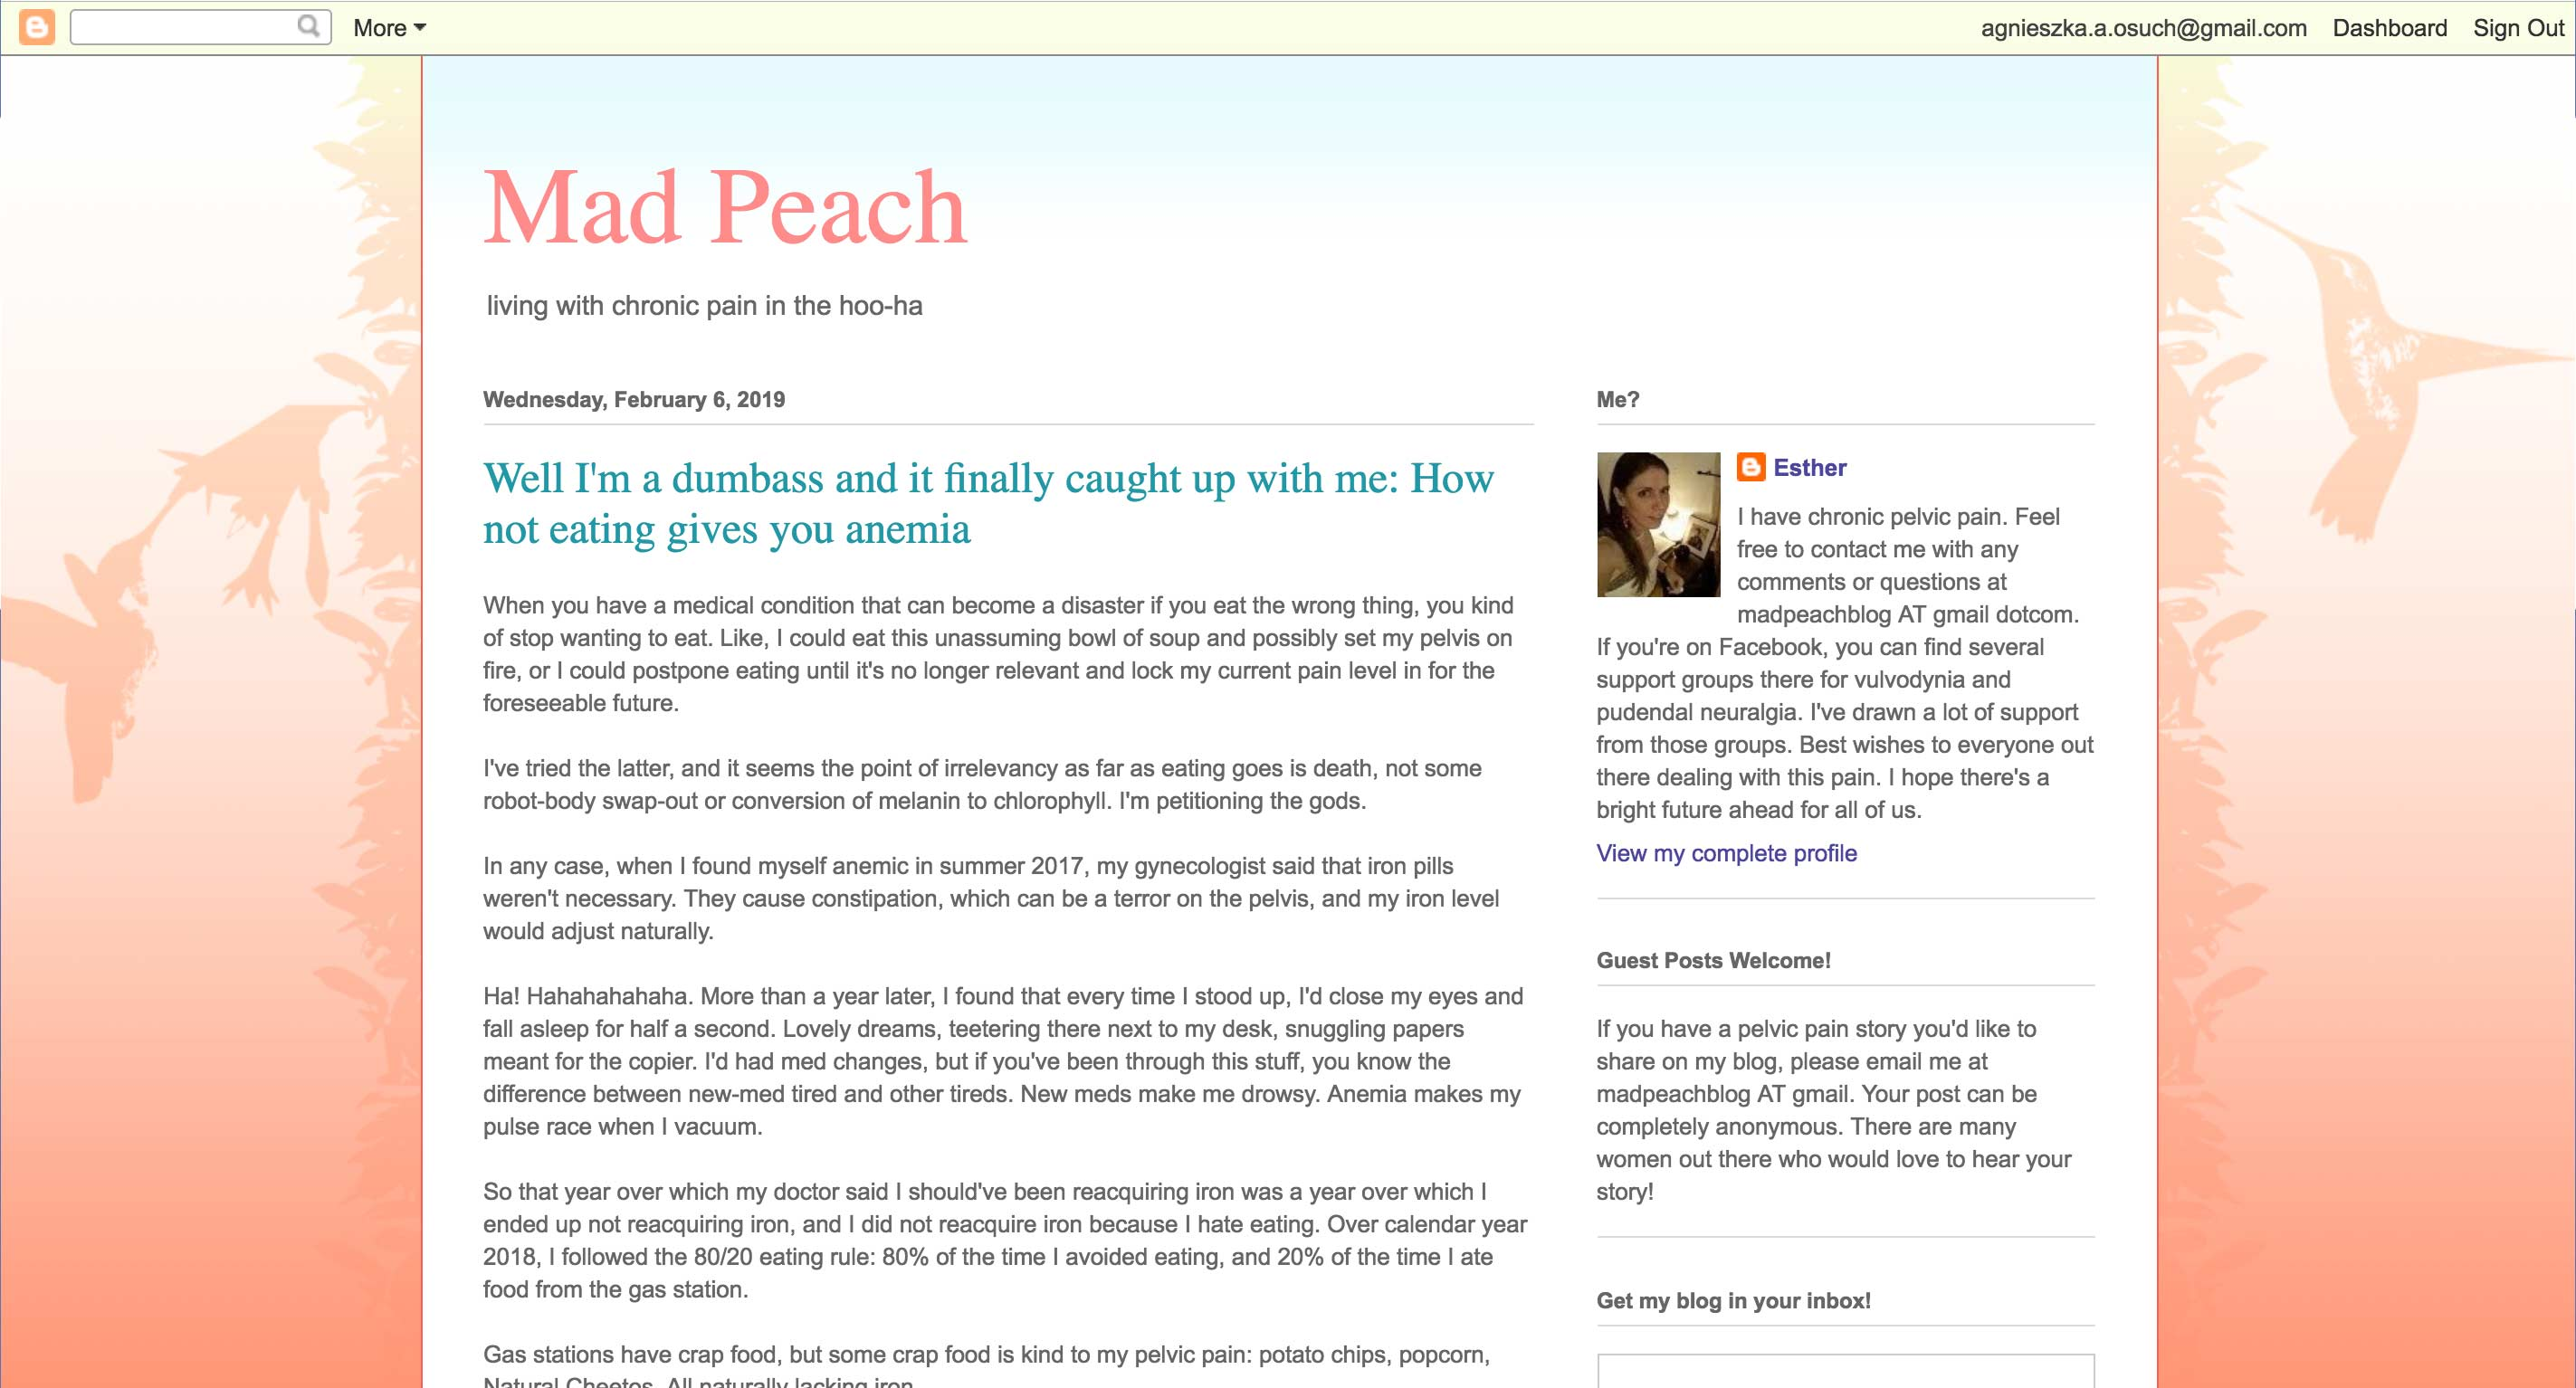 Mad Peach - blog about living with vulvodynia